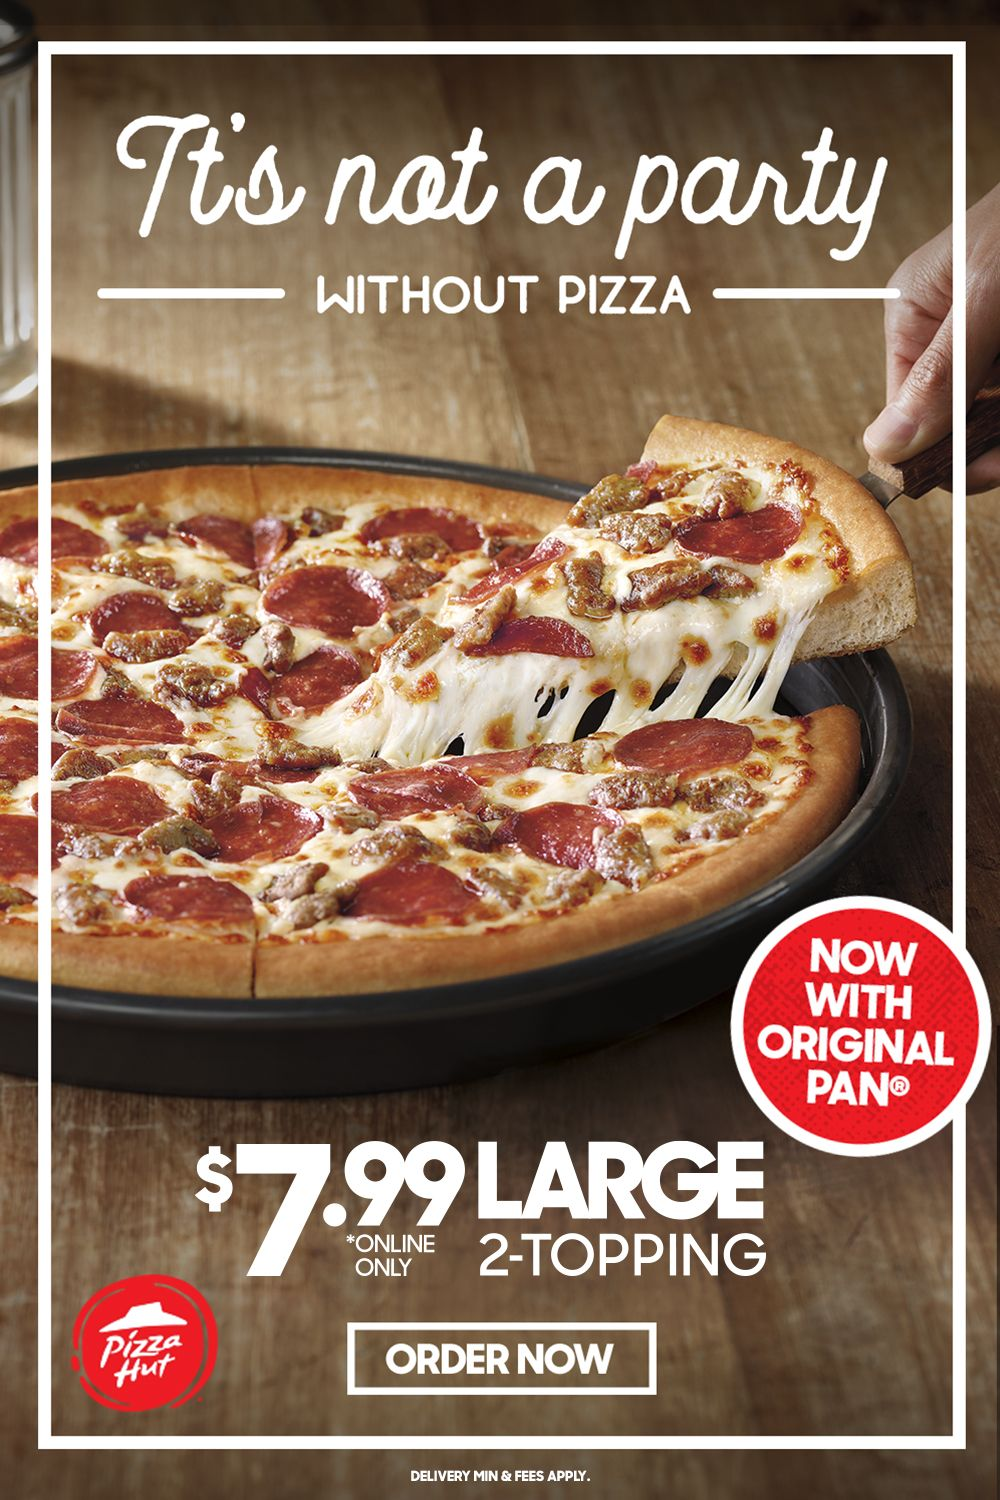 LIMITED TIME ONLY. 7.99 LARGE 2topping, now with